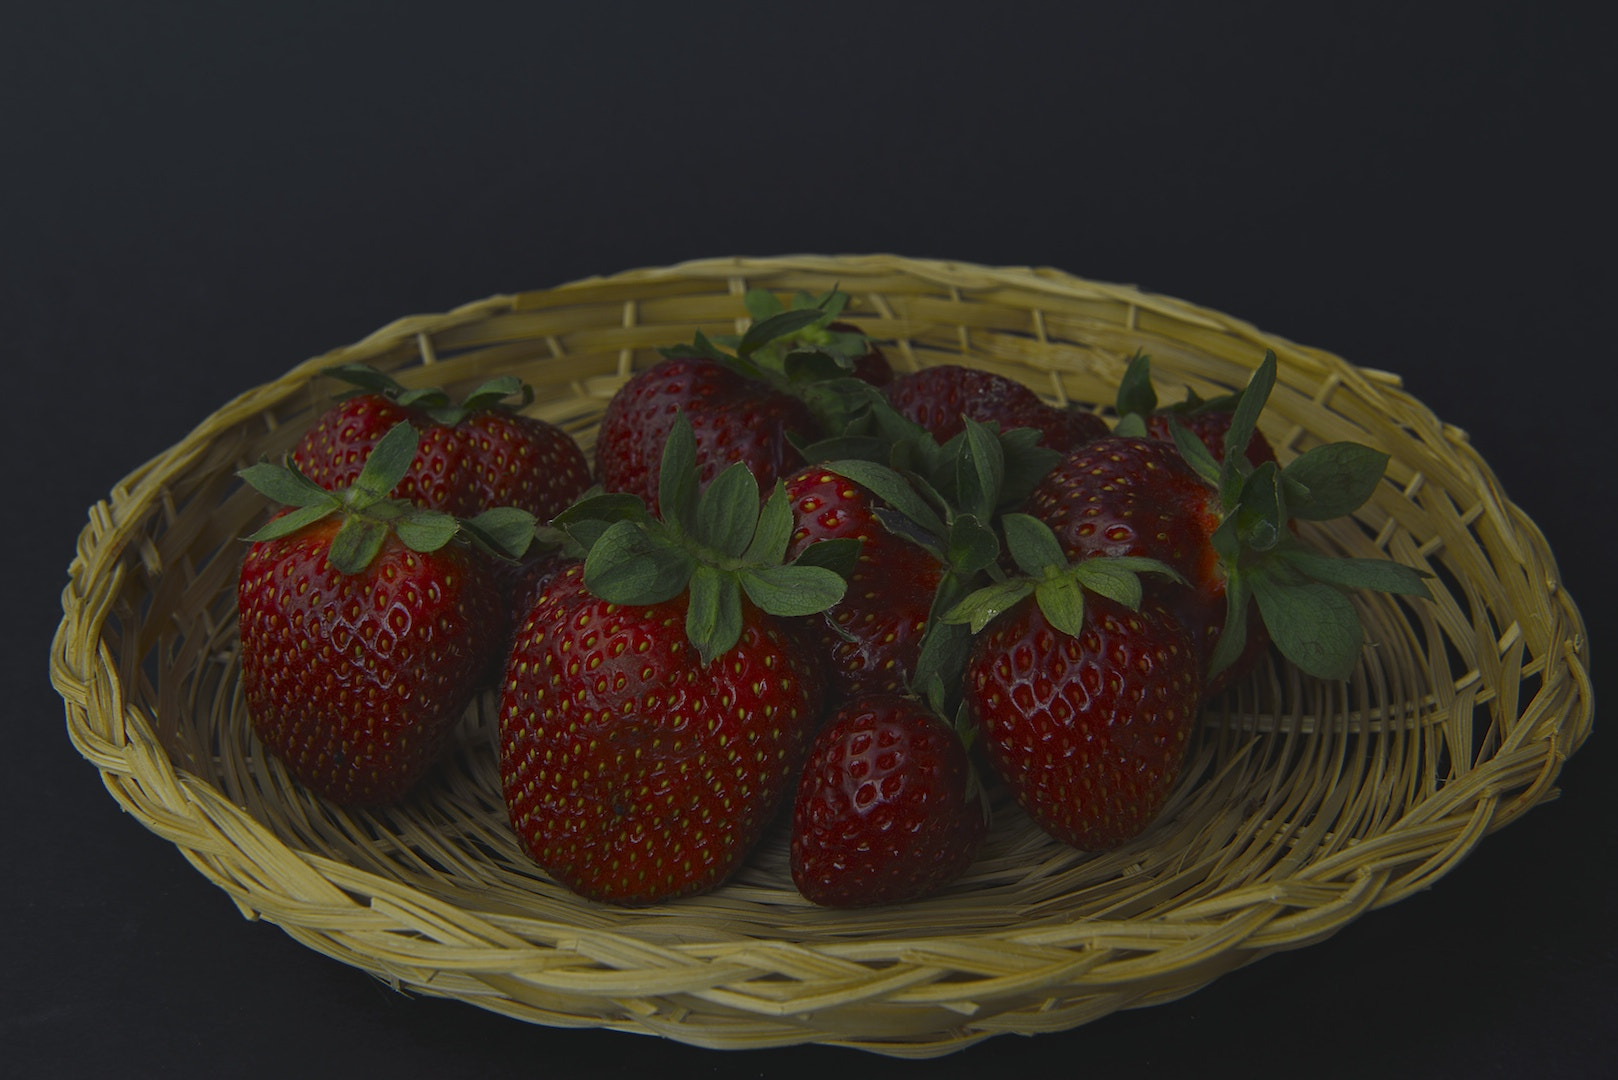 Photograph A basket of strawberries by Andrea Rapisarda on 500px